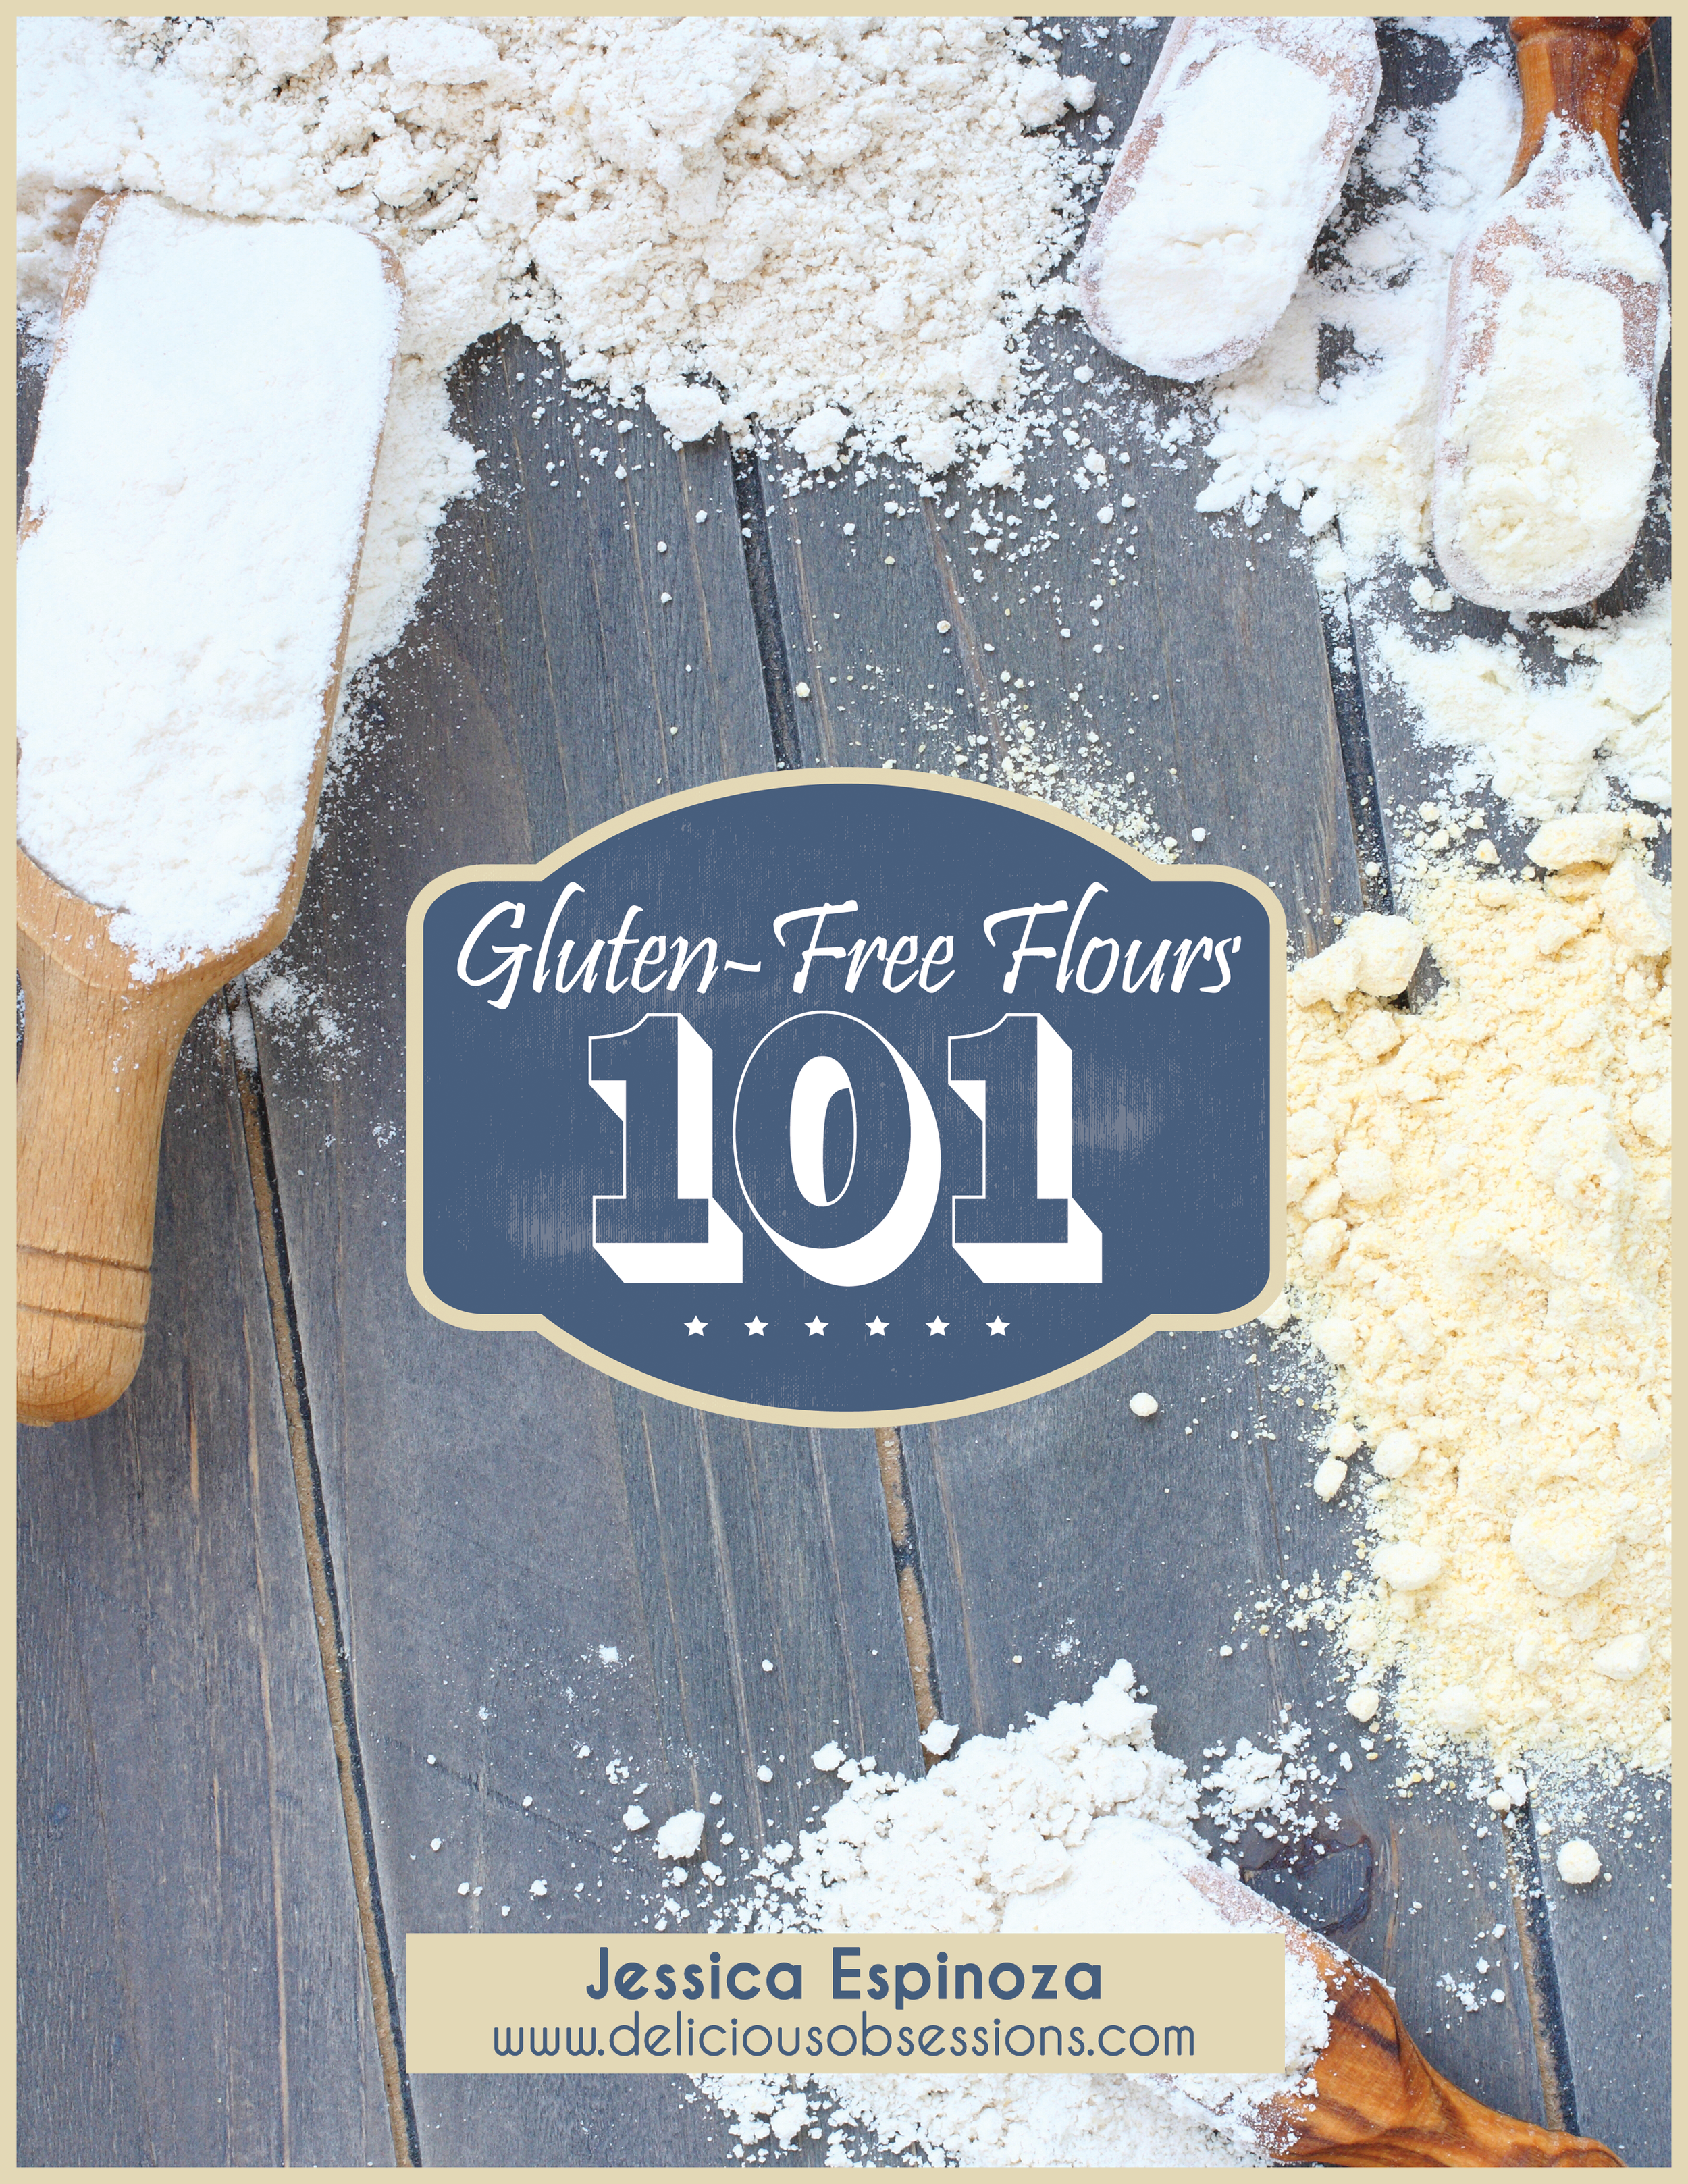 gluten-free-flours-101-cover-image.png